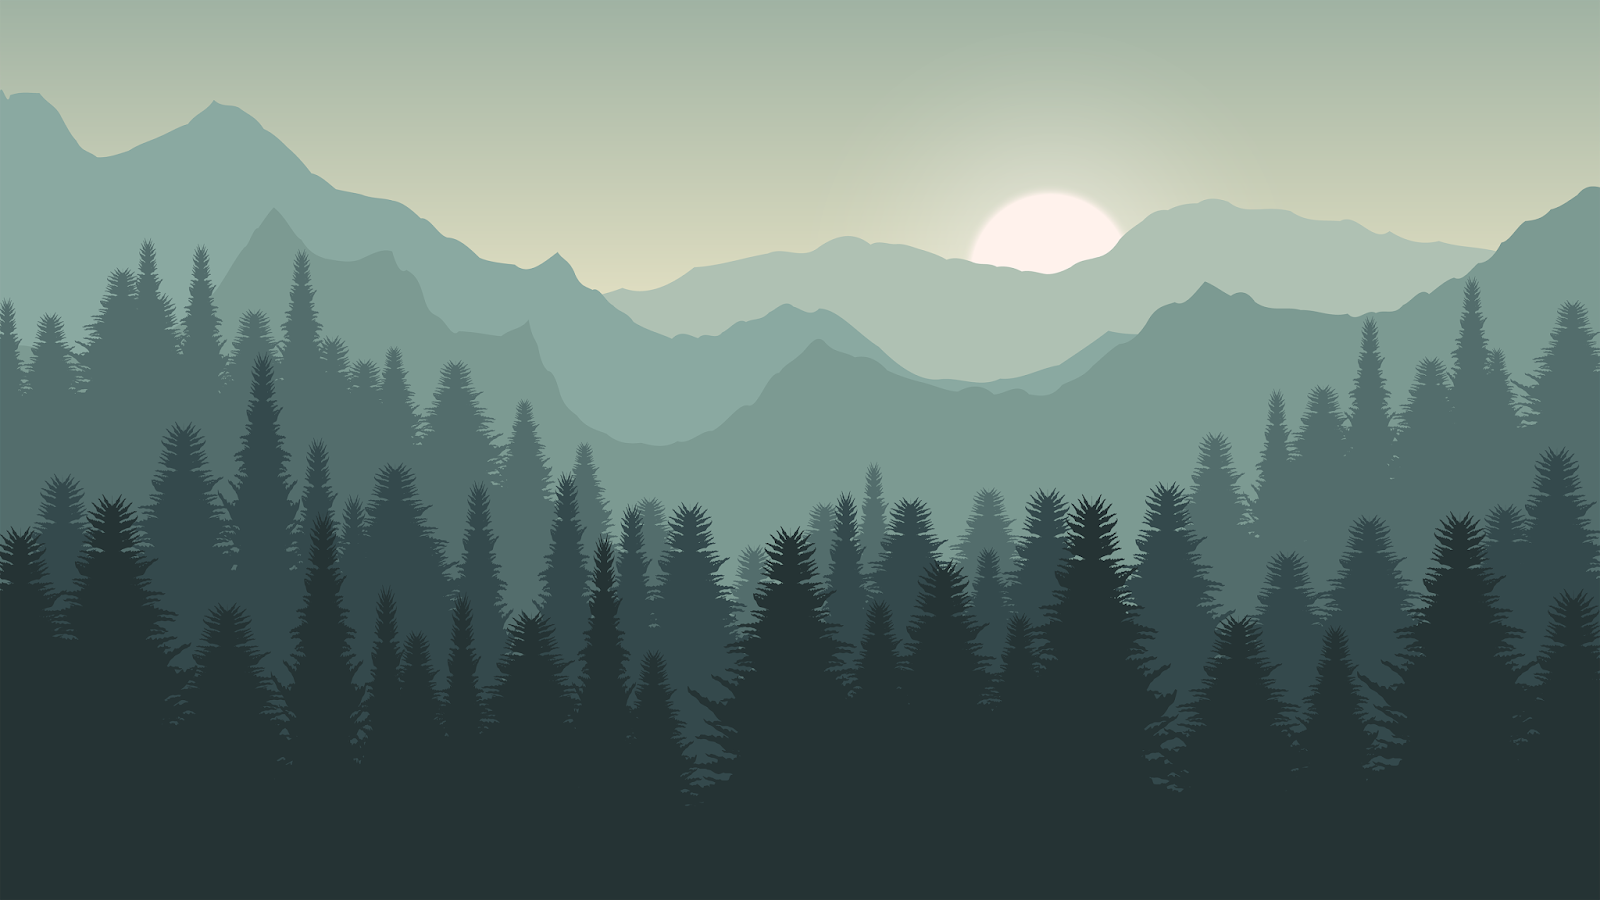 Forest illustration in 4K resolution